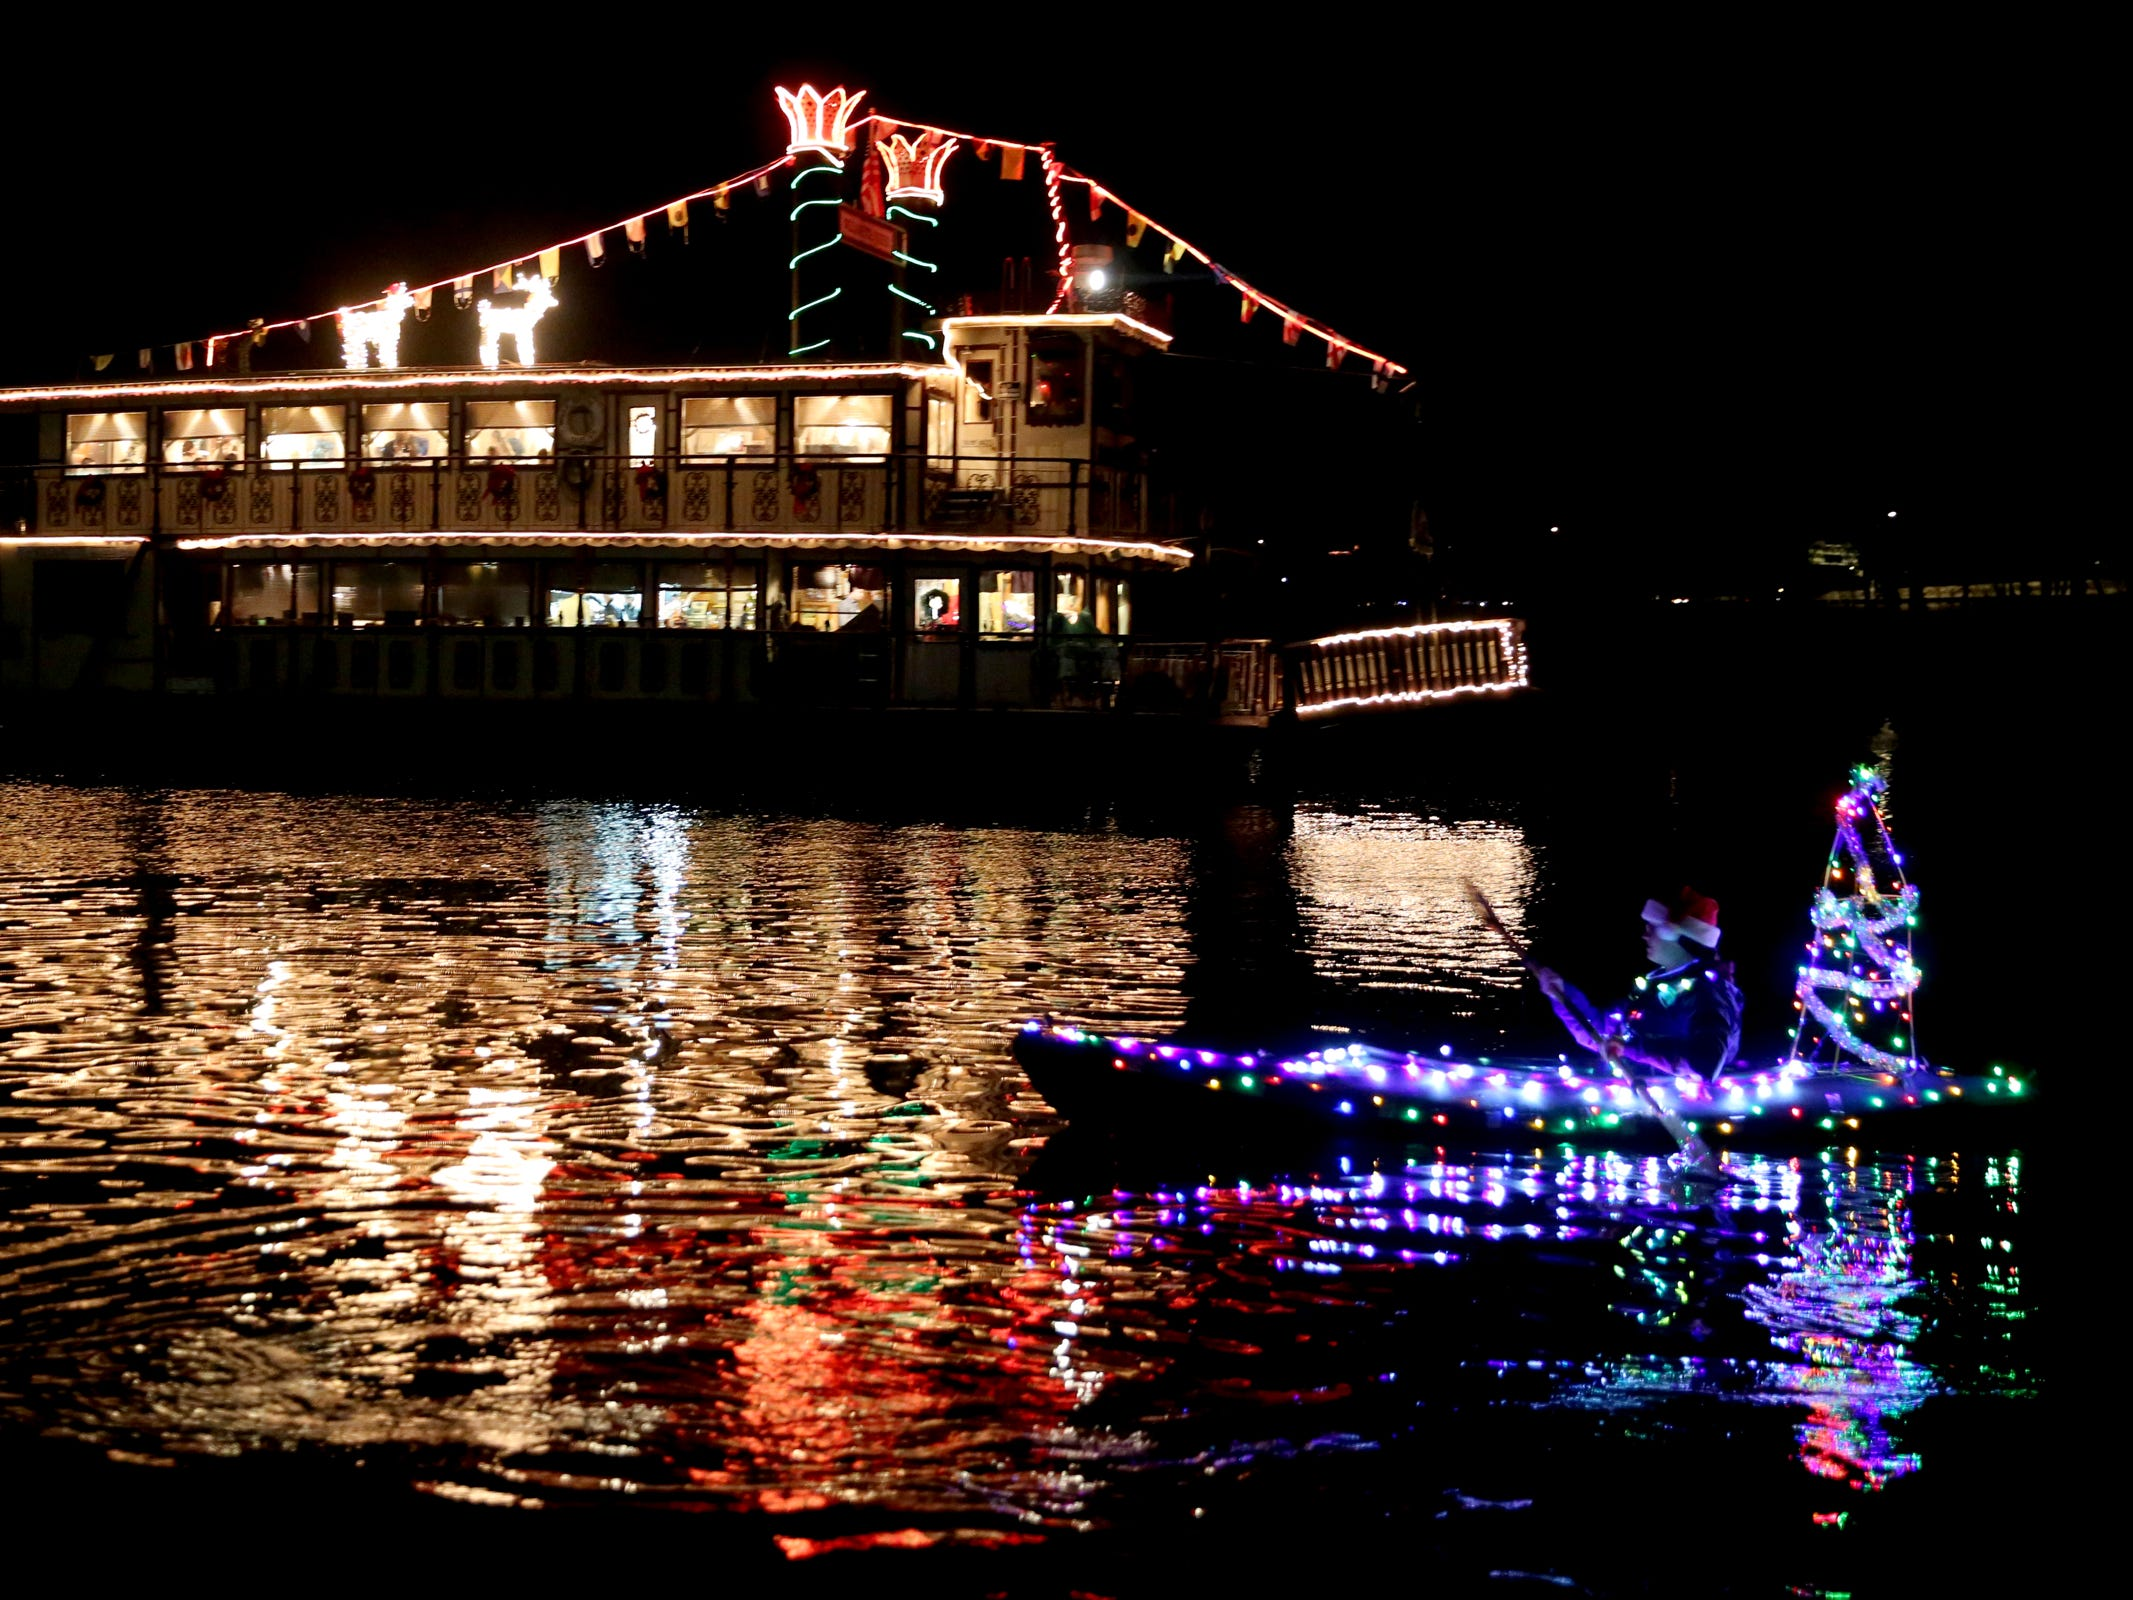 A woman kayaks near the Willamette Queen sternwheeler during the 14th annual Winter Solstice Illuminata Regatta on the Willamette River at Riverfront Park in Salem on Saturday, Dec. 15, 2018.